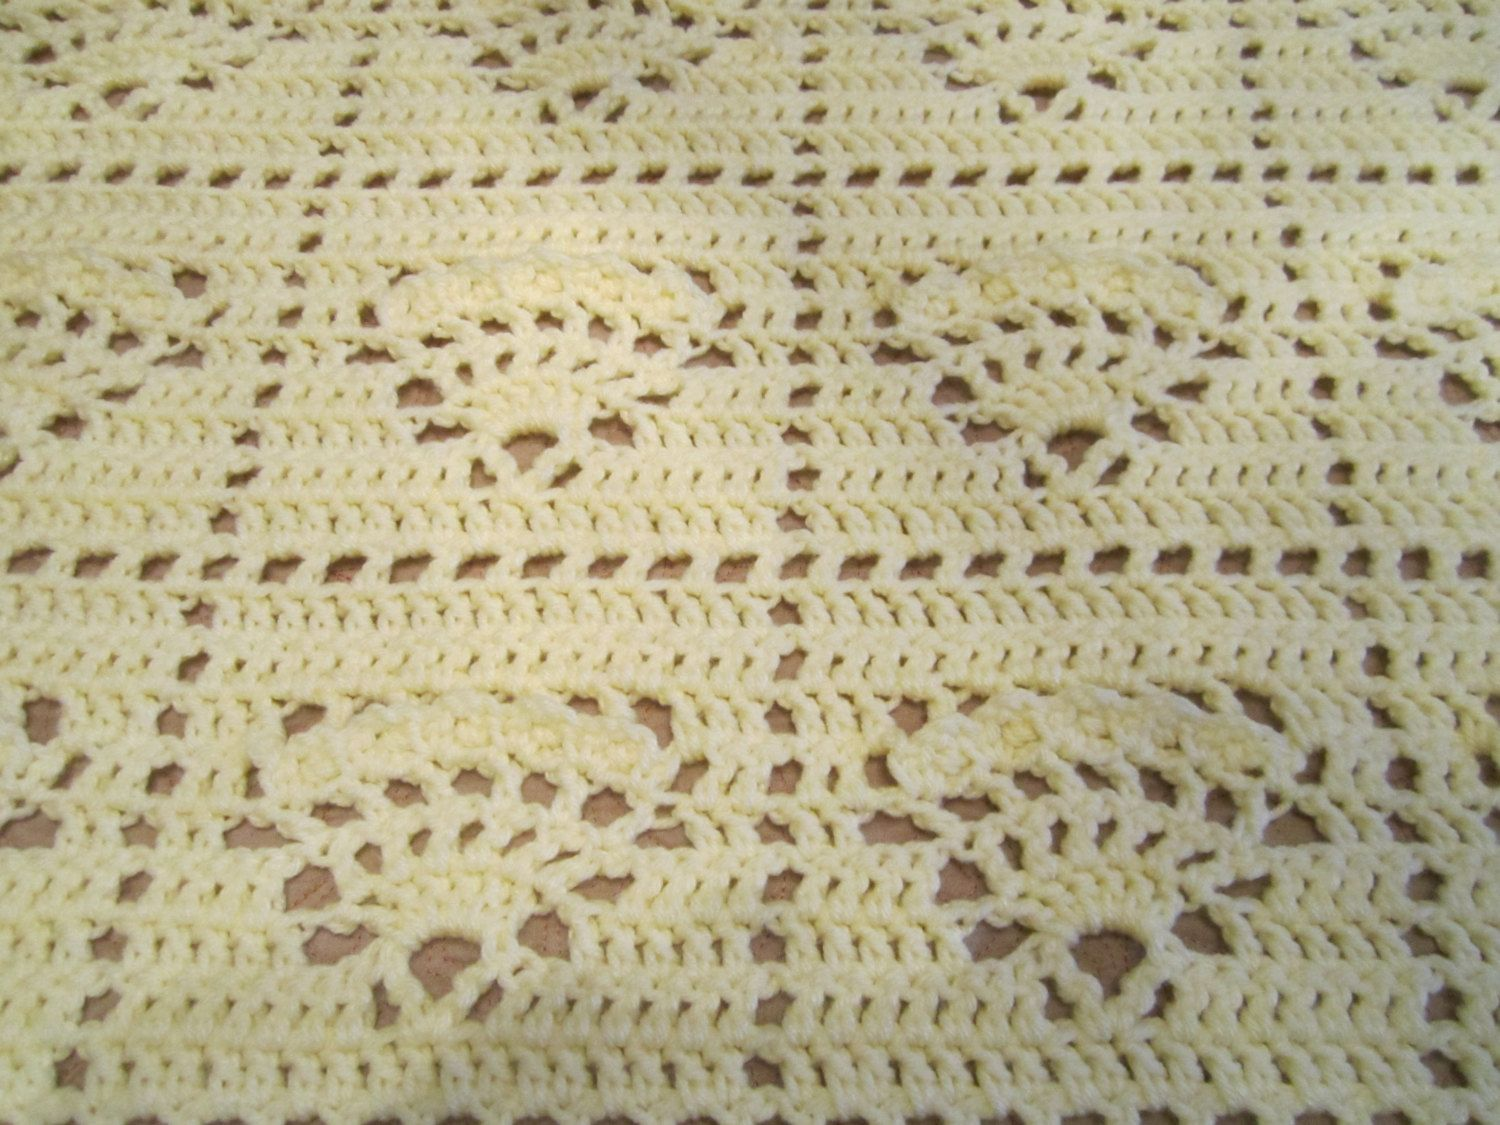 Crocheted Afghan - Cream Colored by PDRCreations on Etsy | Crocheted ...